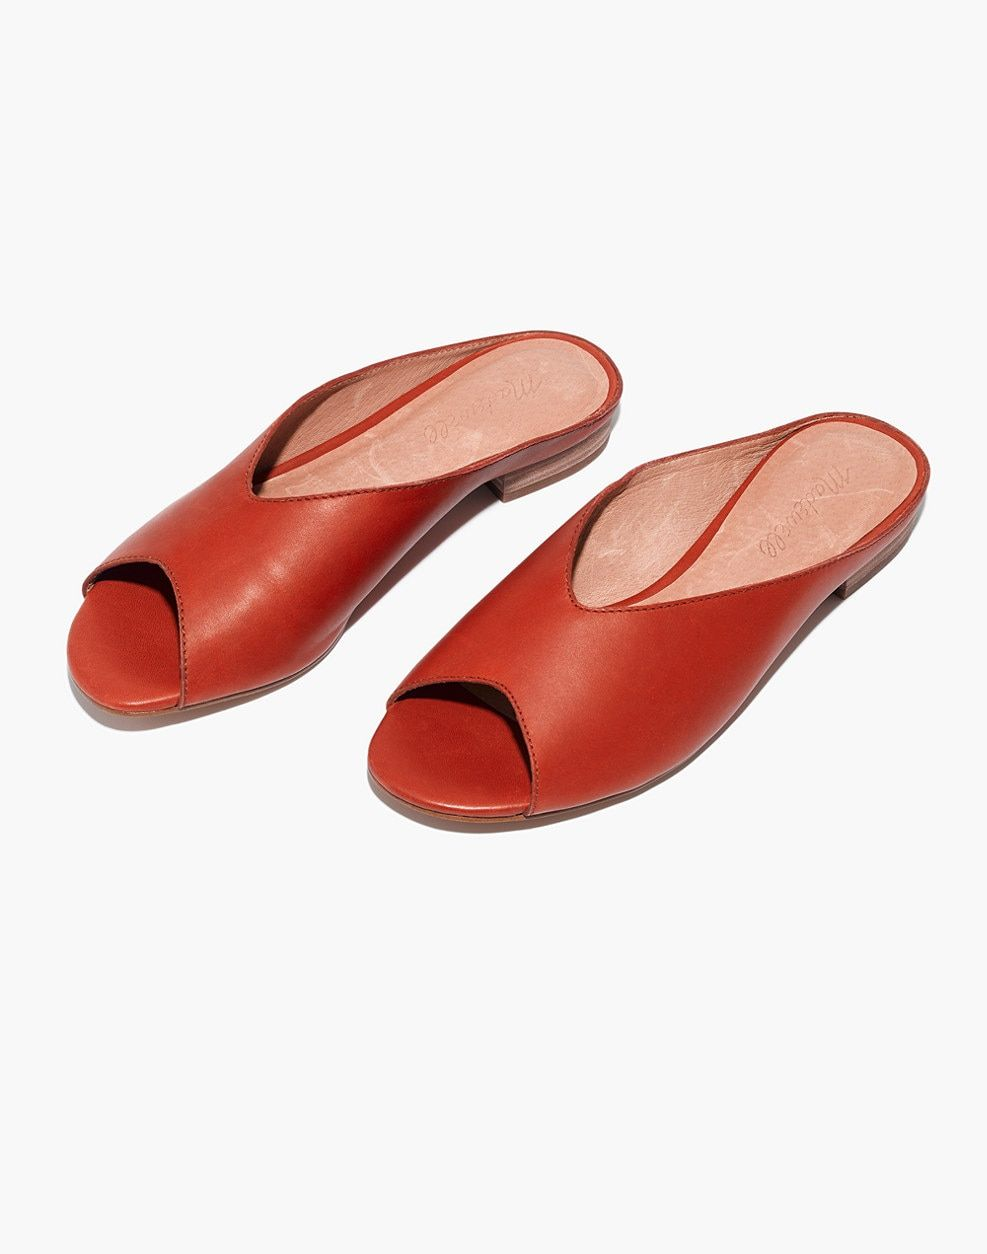 87d5e9e7a78 The Tavi Slide Sandal   flats